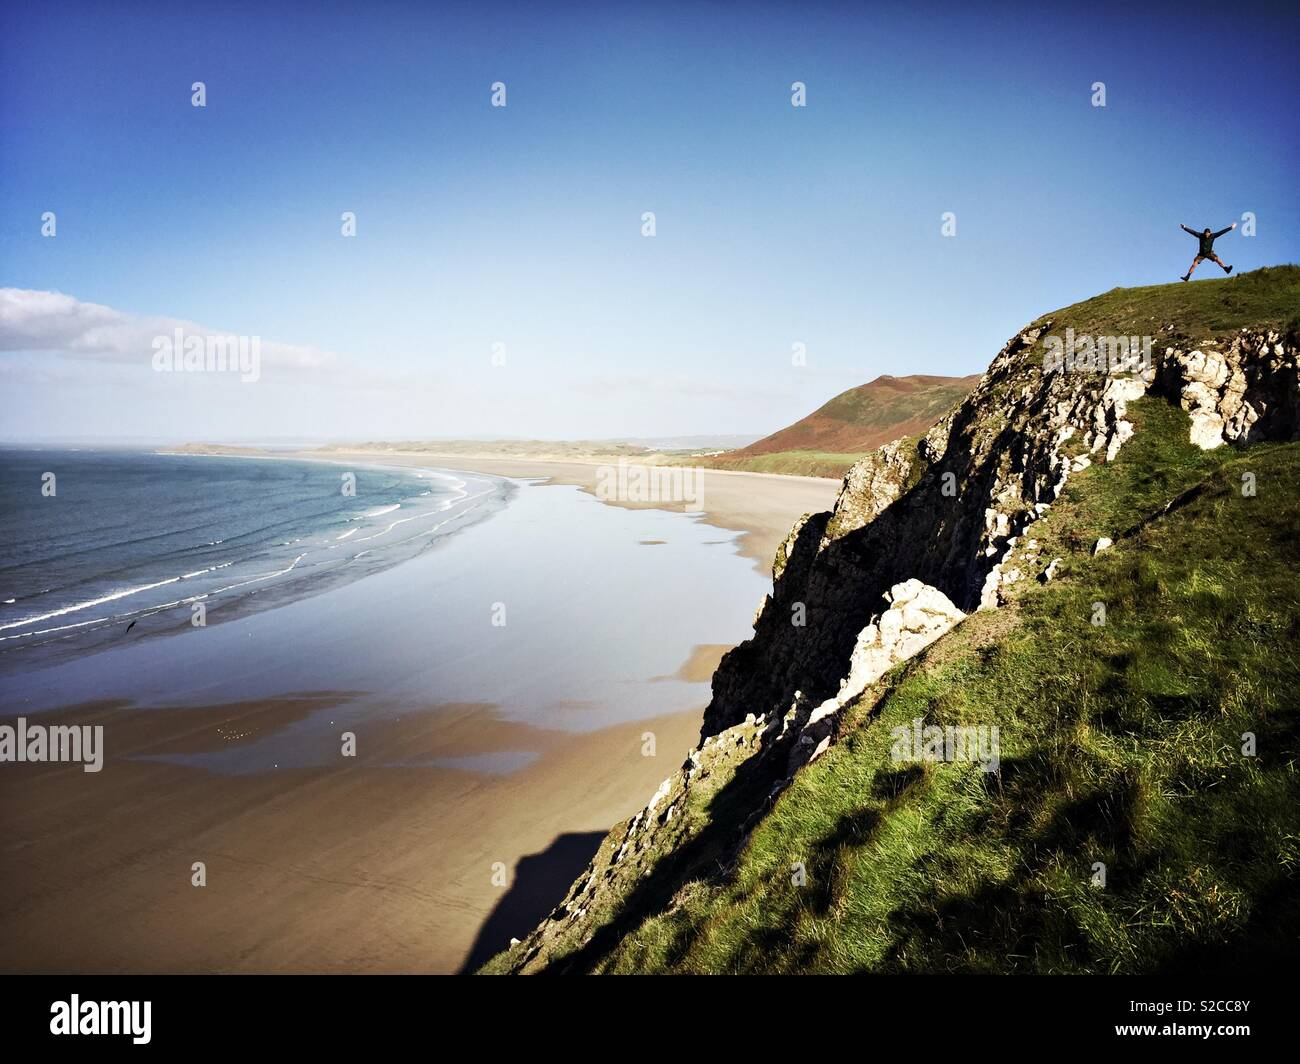 A man does a star jump on the cliff top overlooking Rhossili Bay in the Gower Peninsular in Wales. - Stock Image